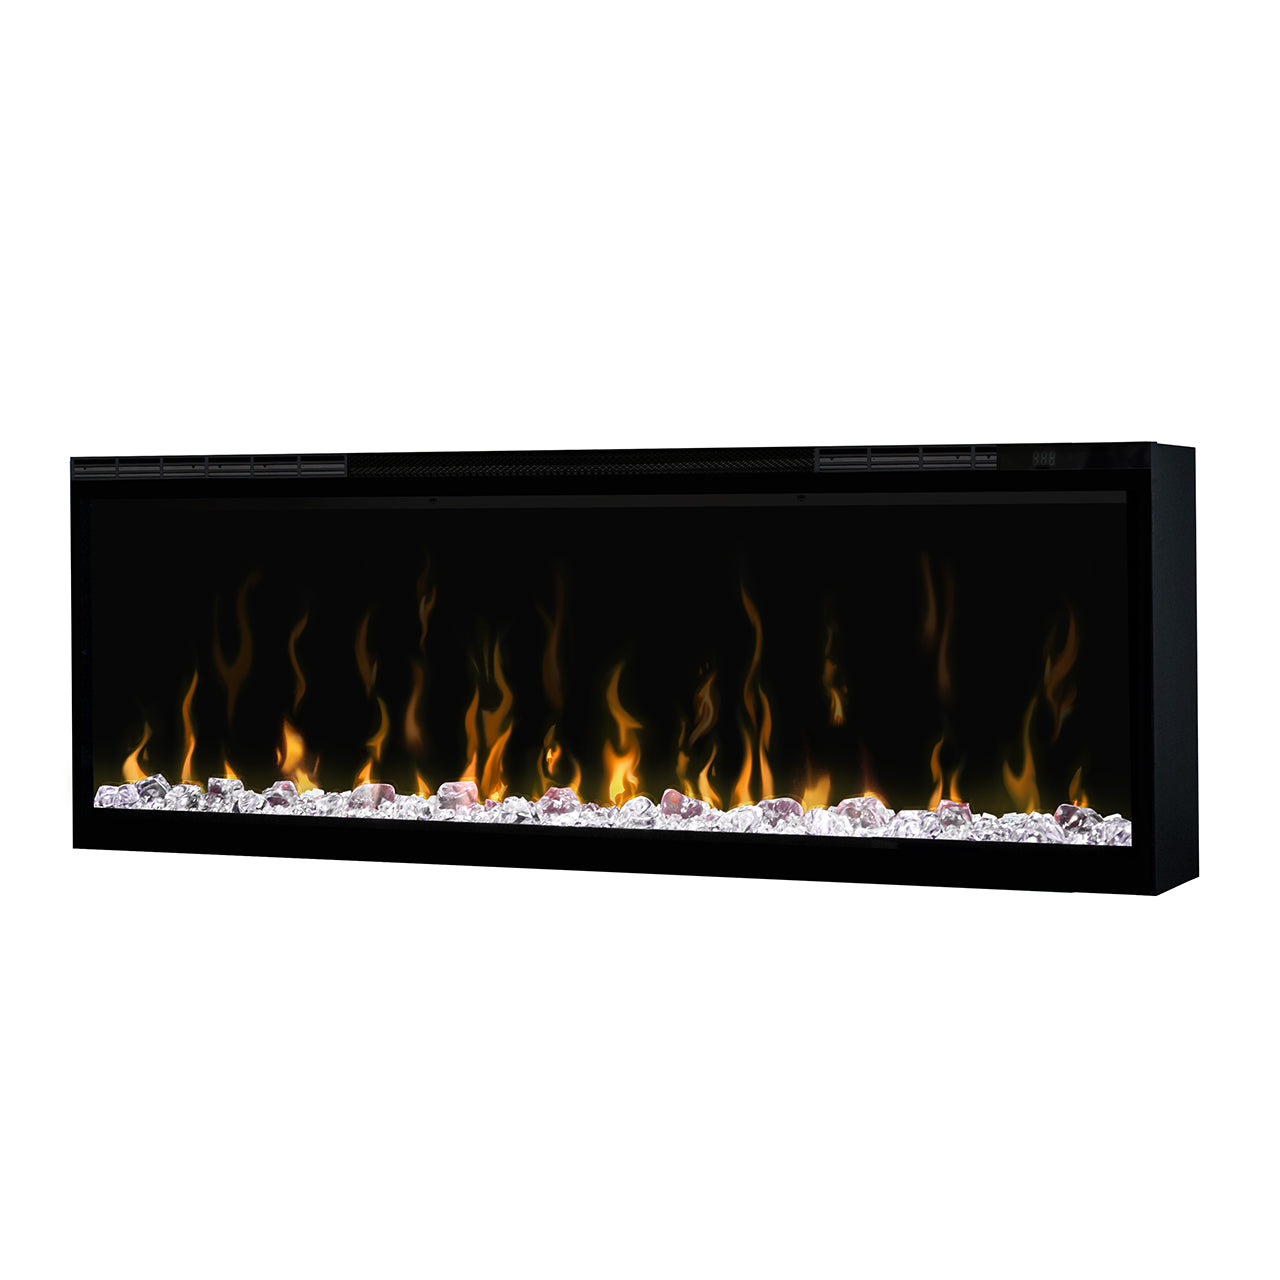 "IgniteXL® 50"" Linear Electric Fireplace"